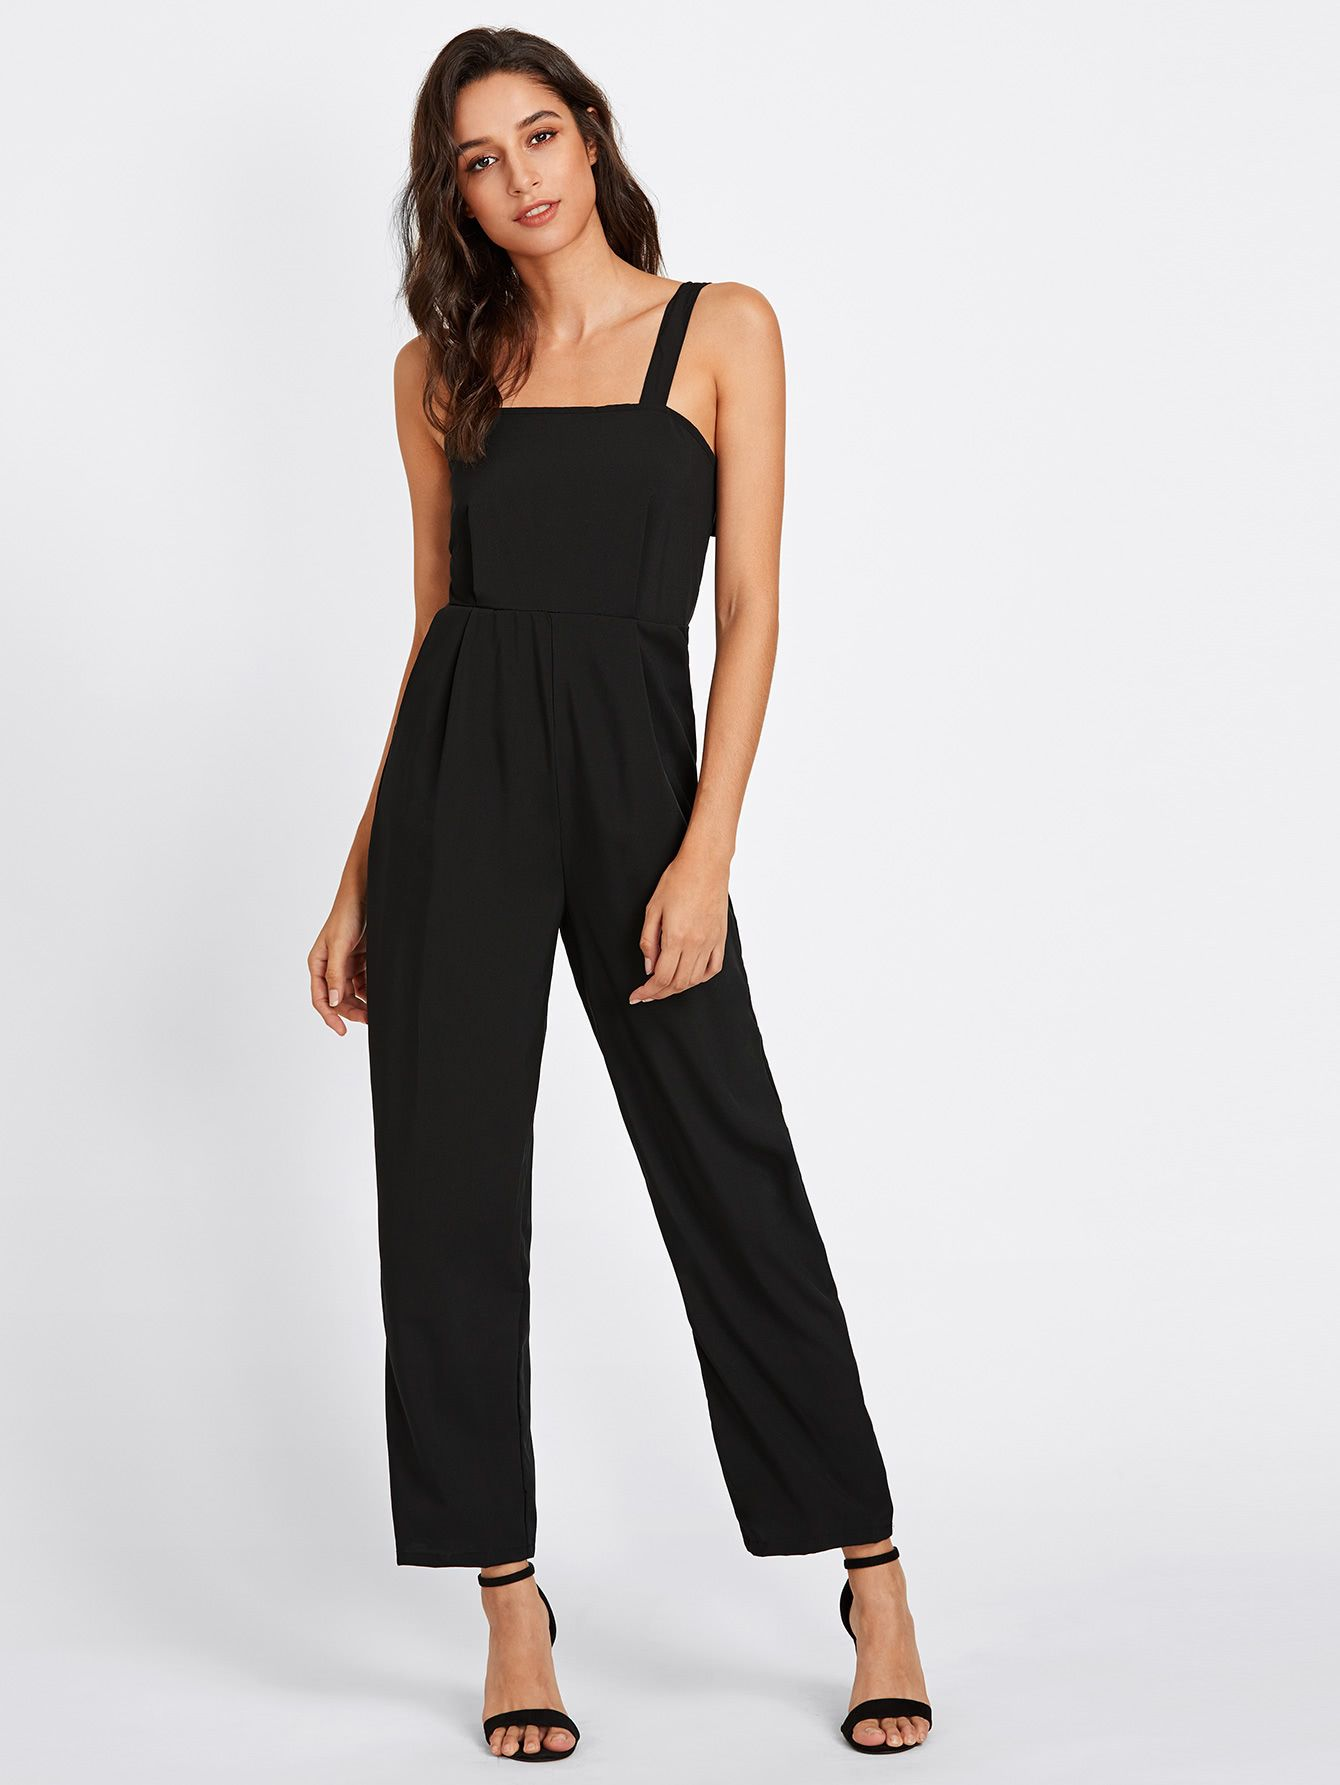 76999ddf7ae Shop Adjustable Strap Button Back Jumpsuit online. SheIn offers Adjustable  Strap Button Back Jumpsuit   more to fit your fashionable needs.